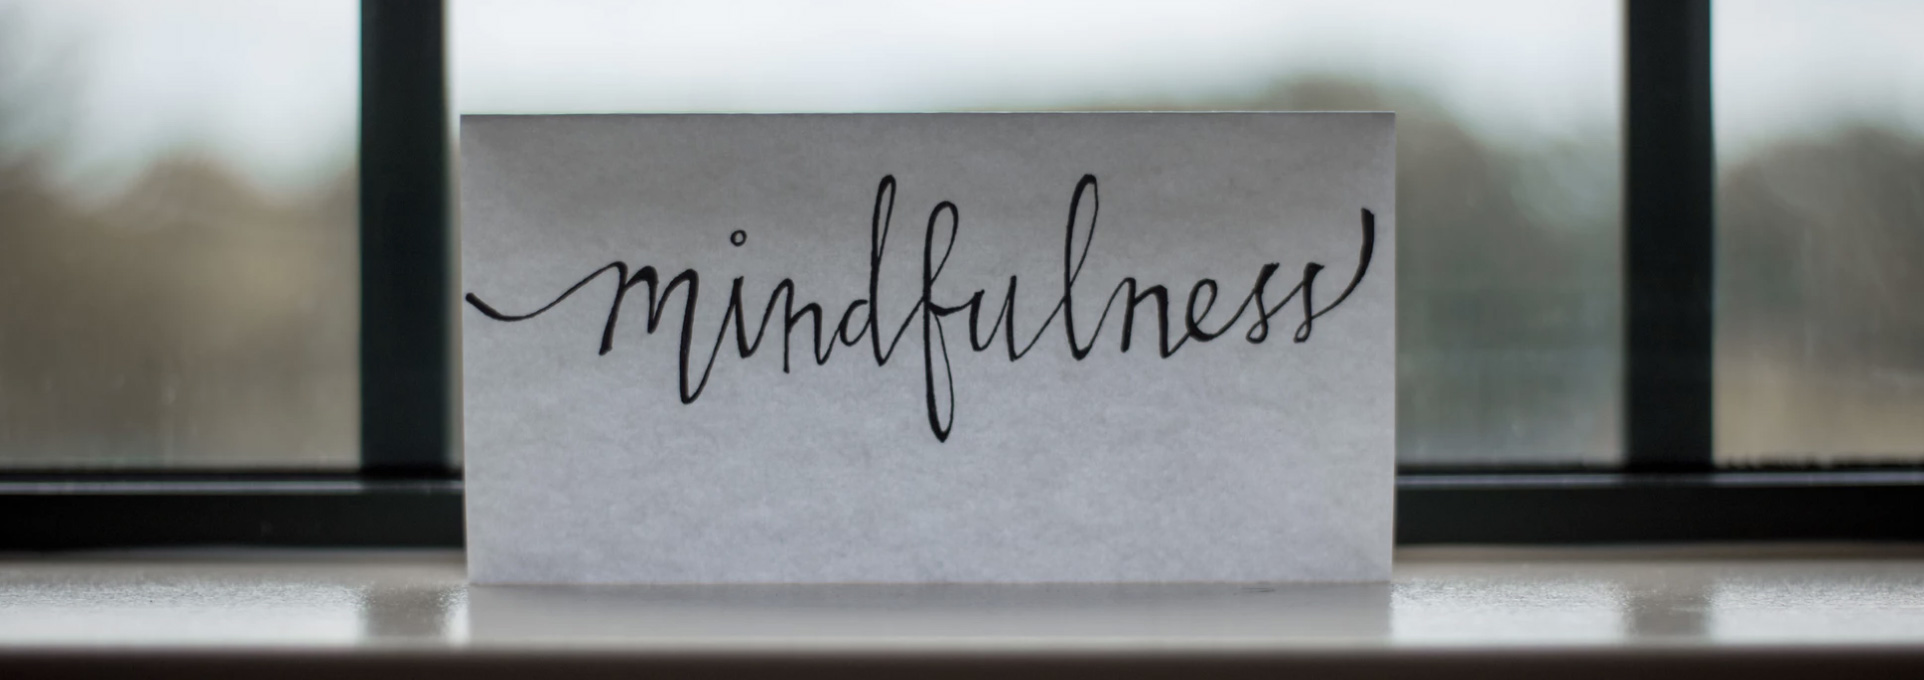 A paper in the window with a mindfulness caption on it